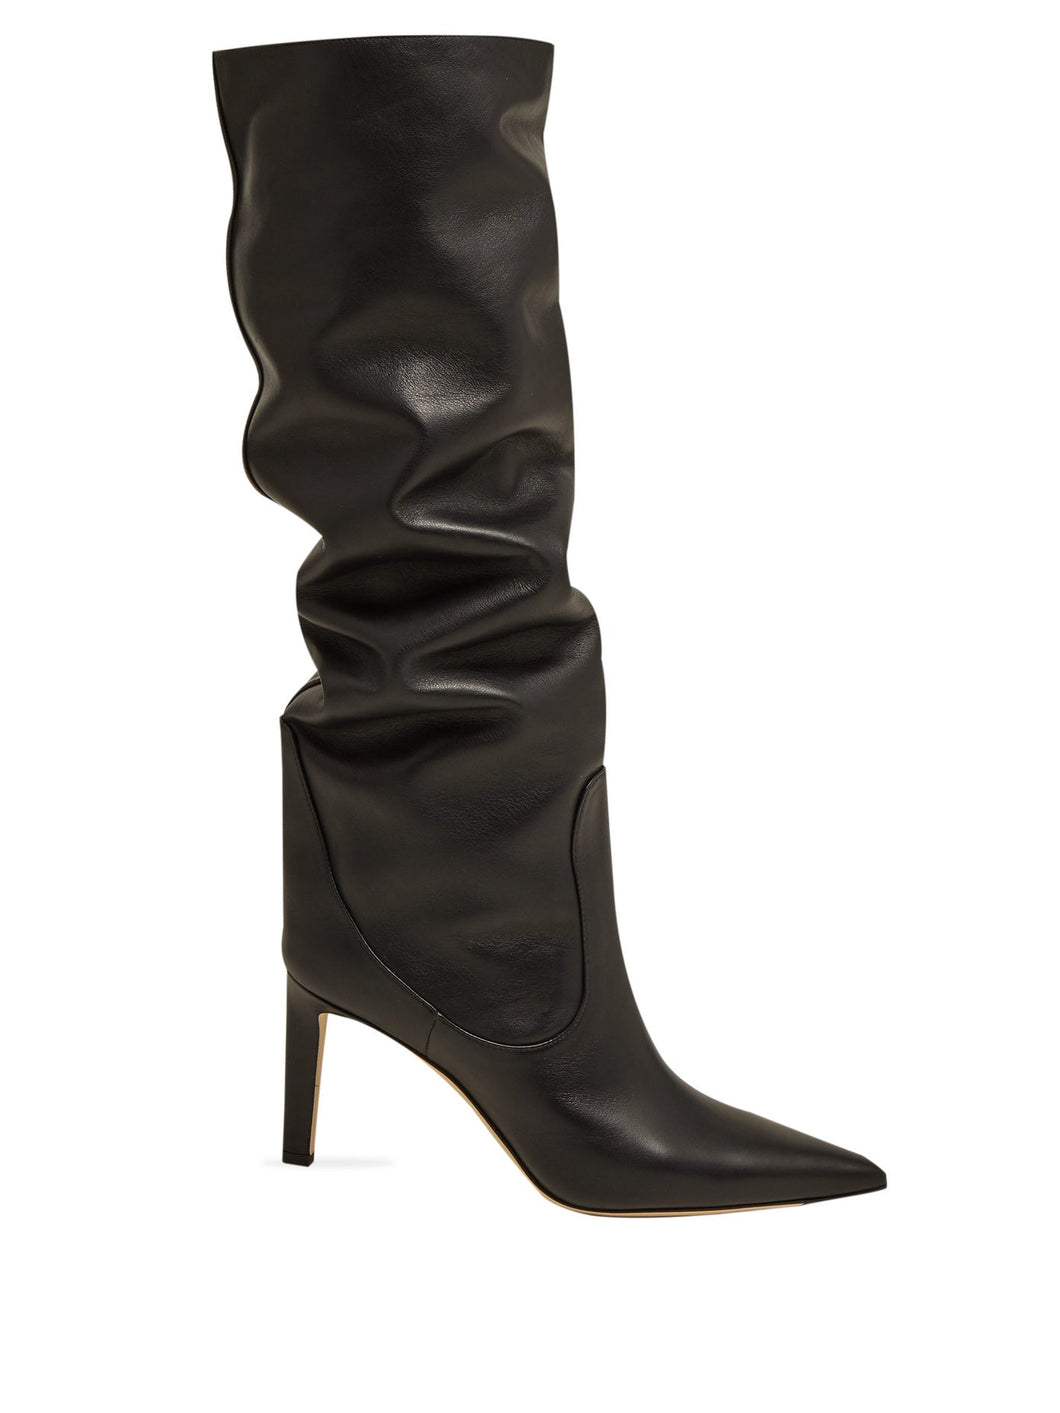 Mavis 85 knee-high leather boots